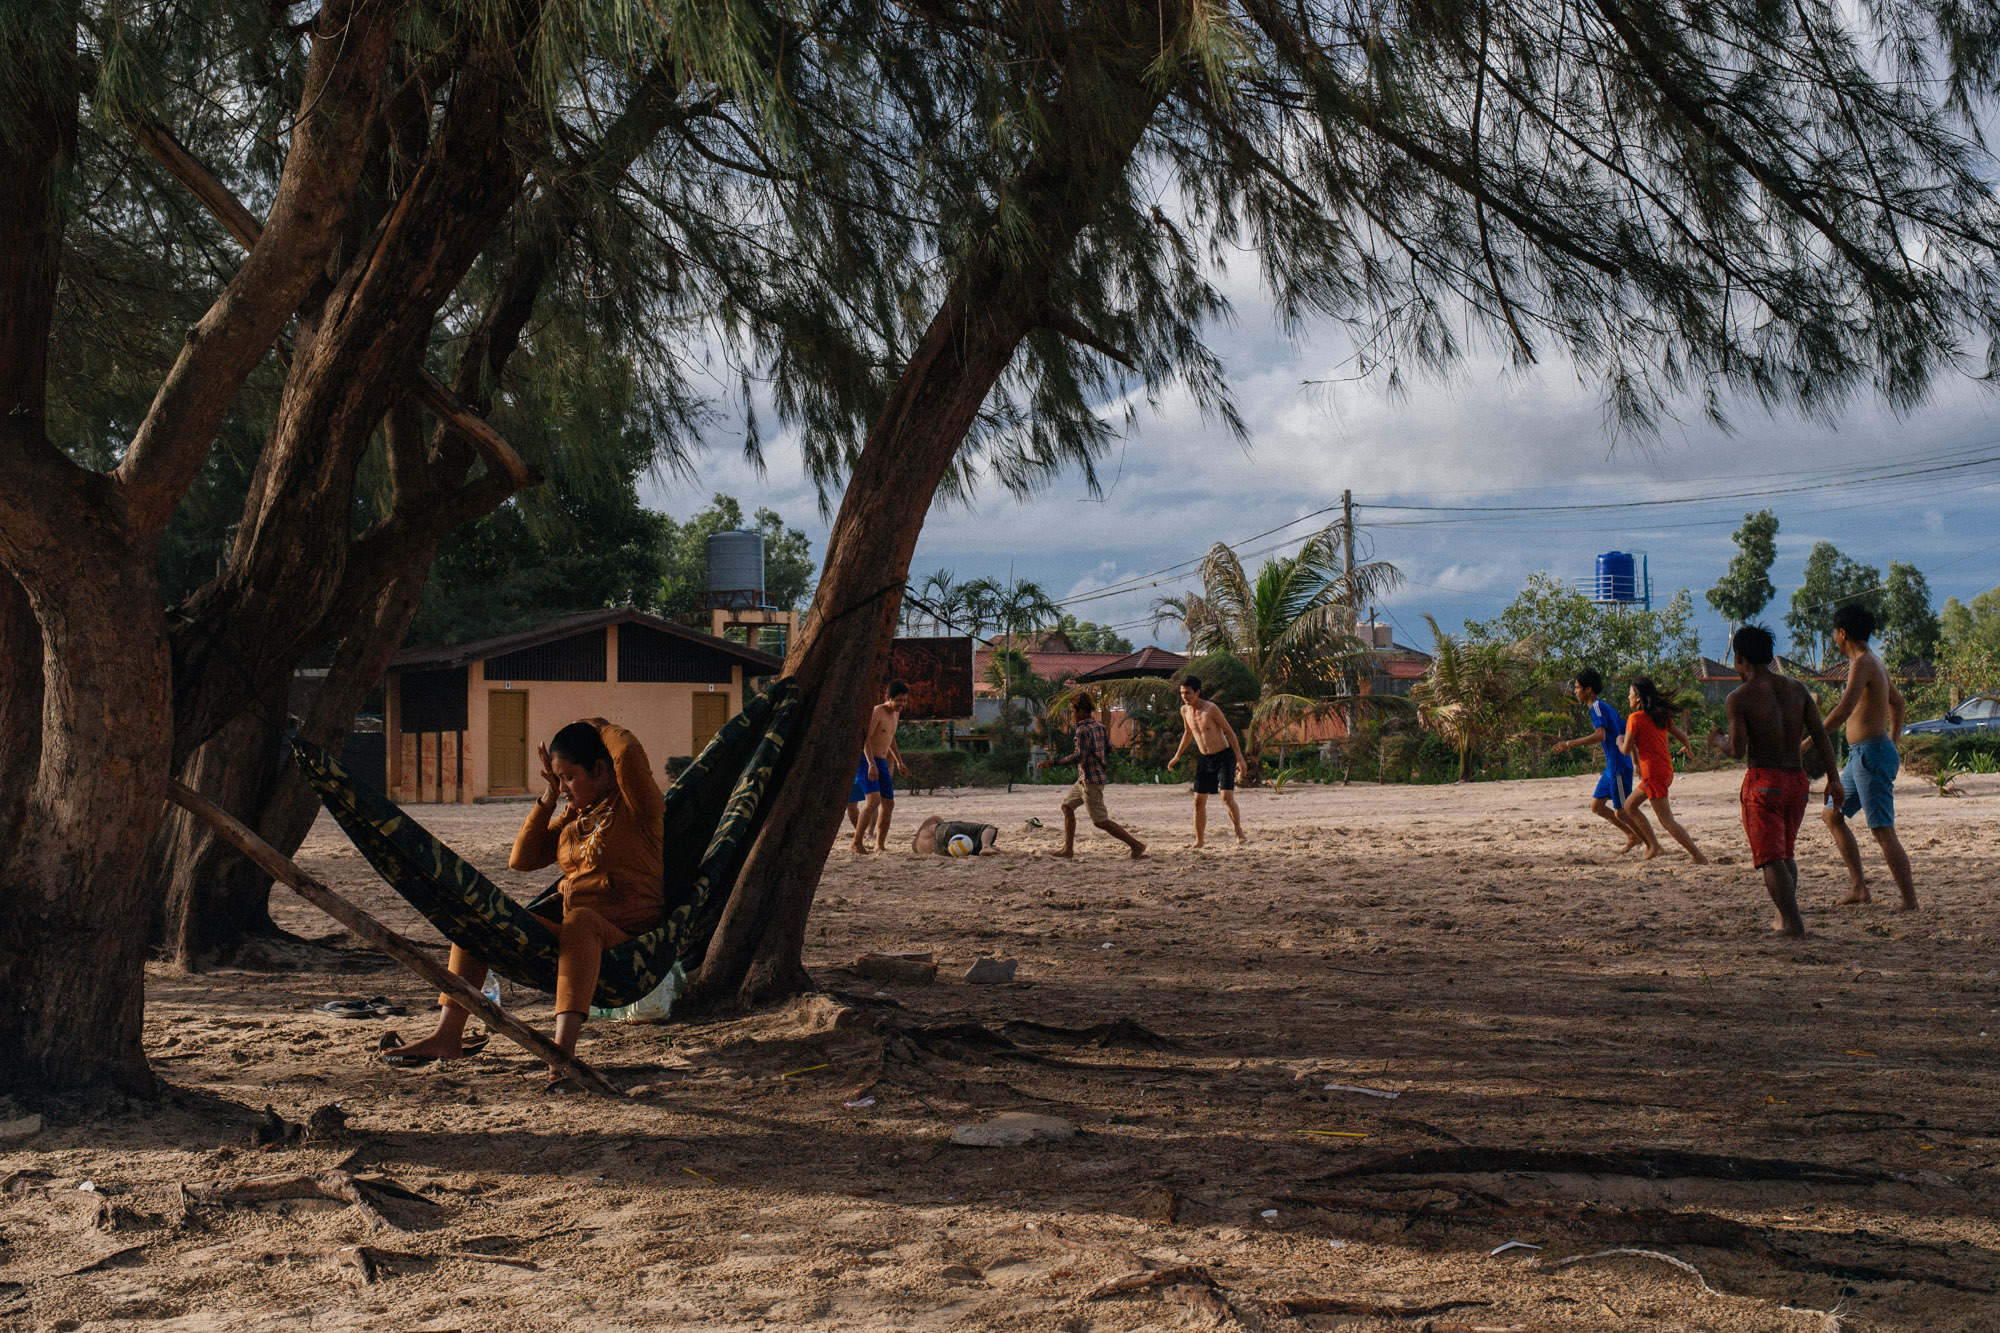 A group of teenagers play football and barbecue seafood on the sand.